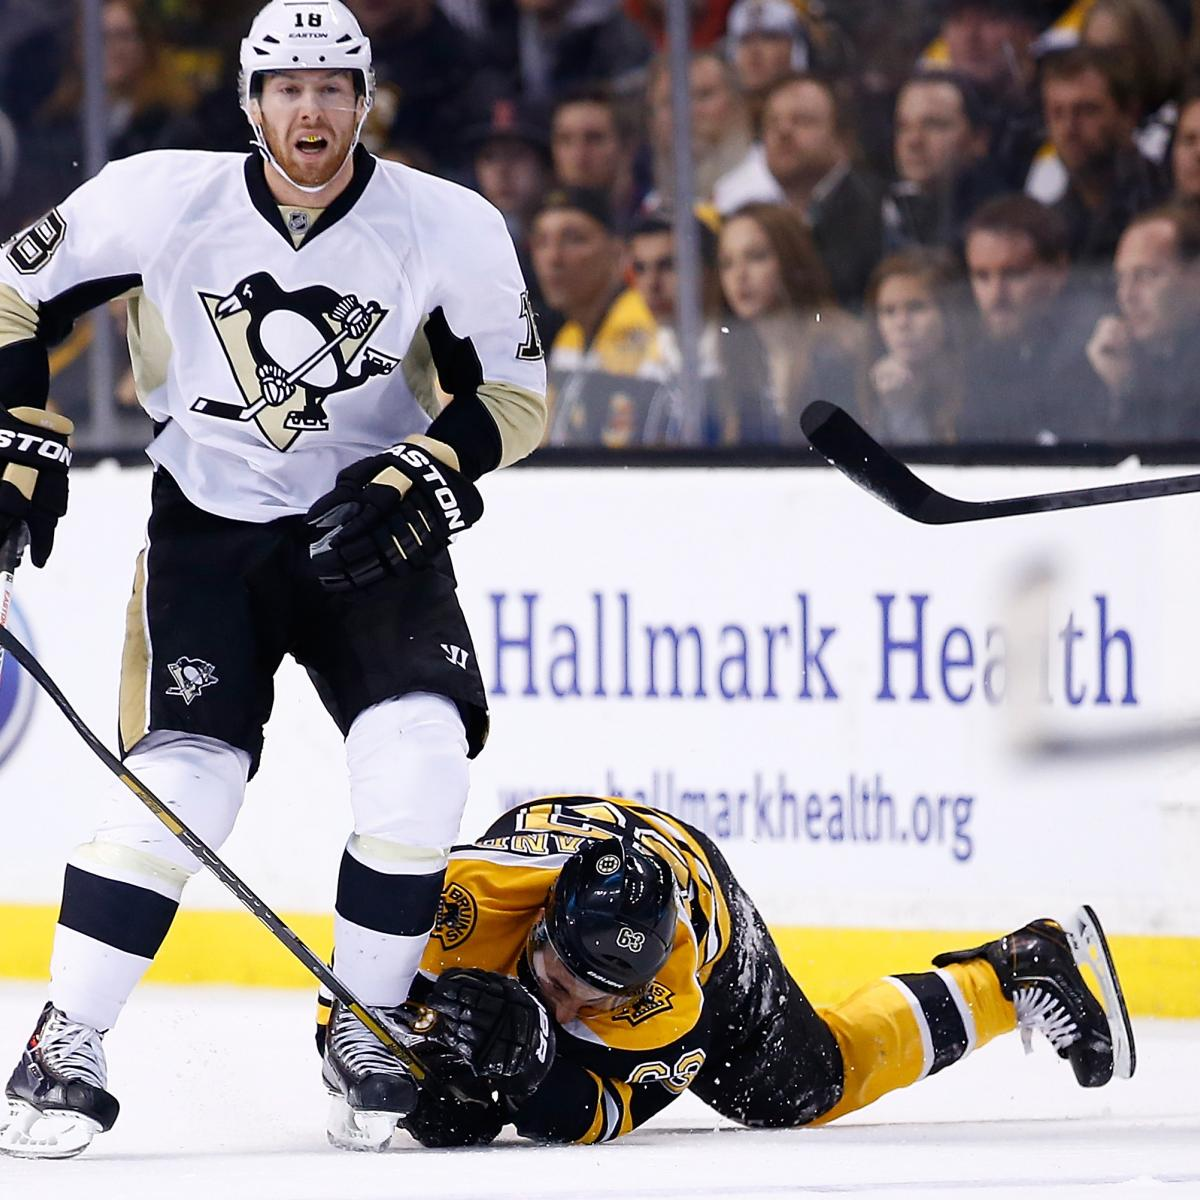 James Neal Suspended 5 Games For Hit On Brad Marchand